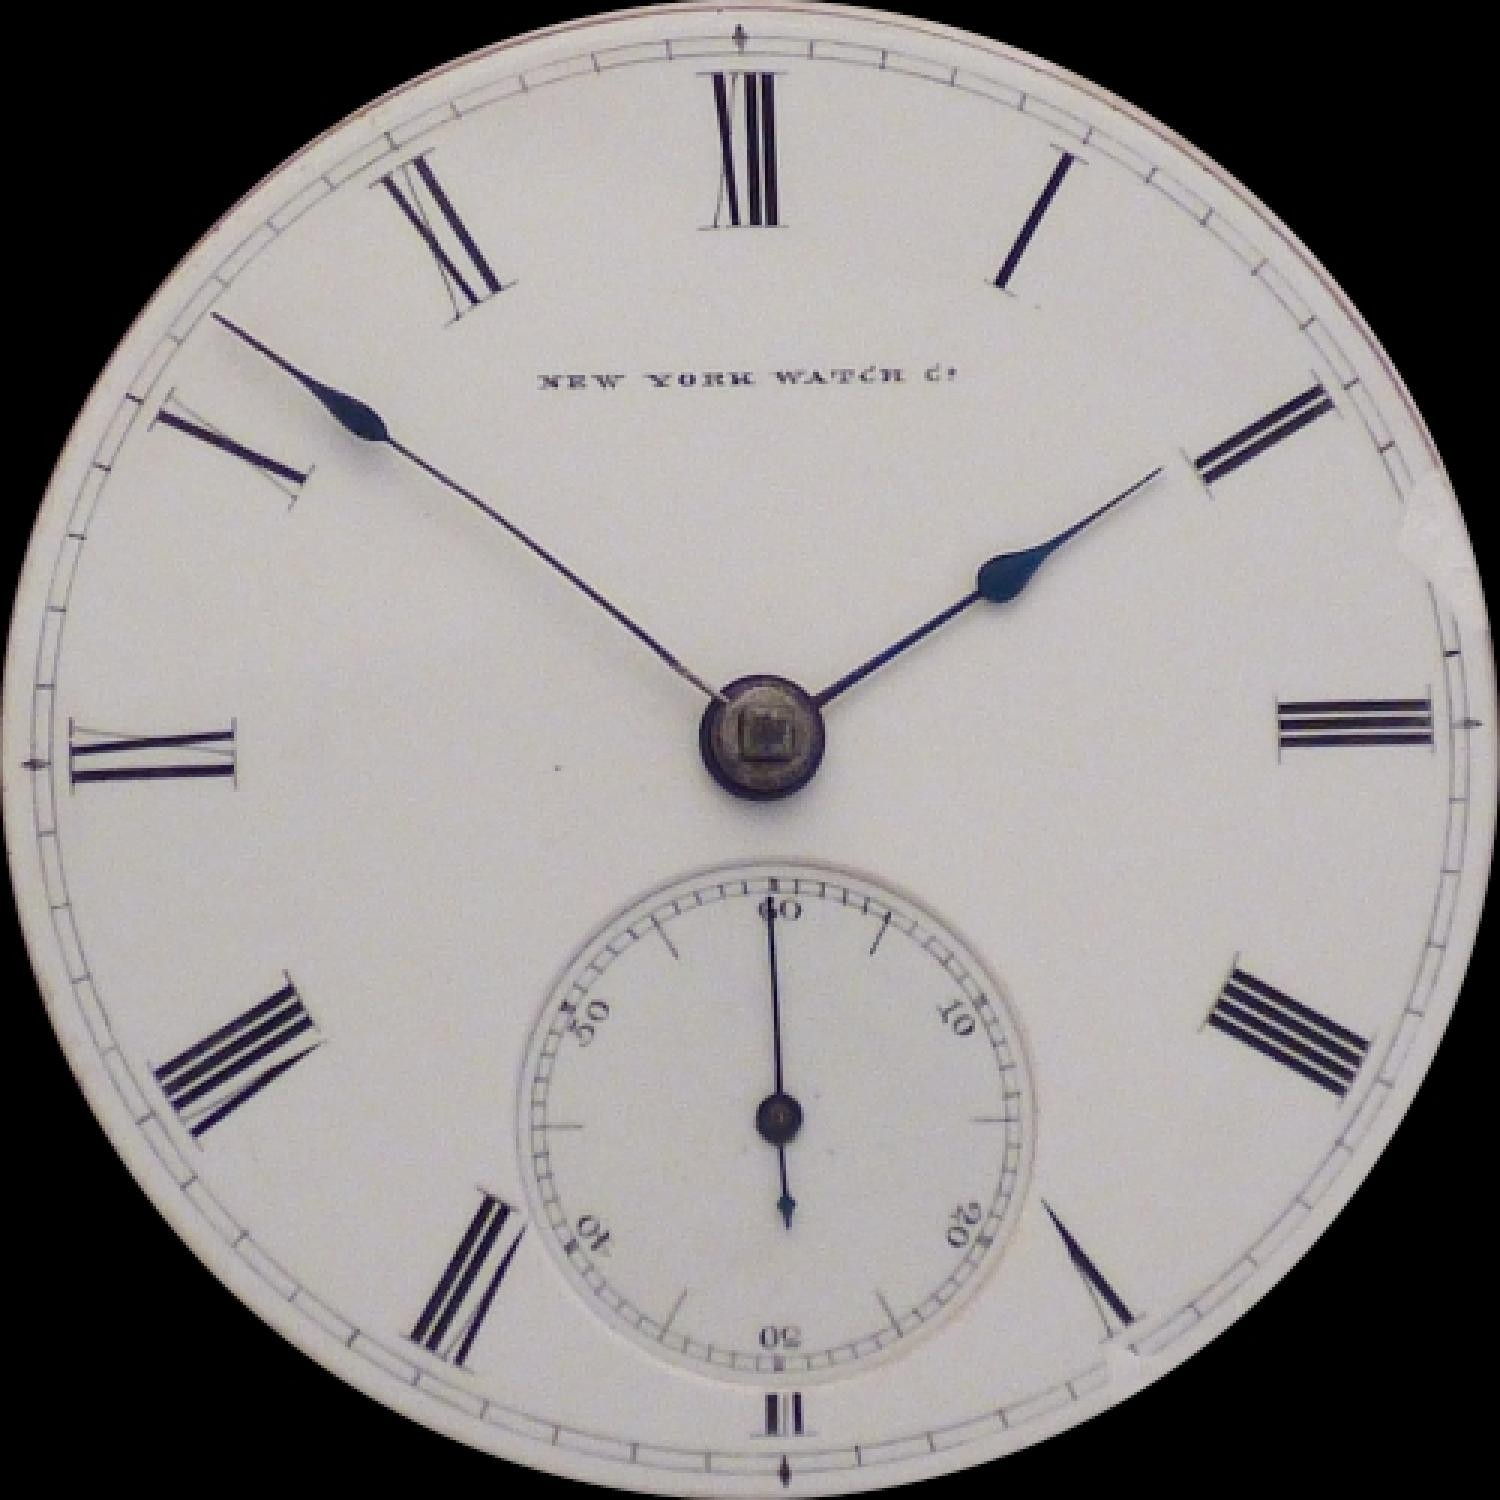 Image of New York Watch Co. Chester Woolworth #19435 Dial